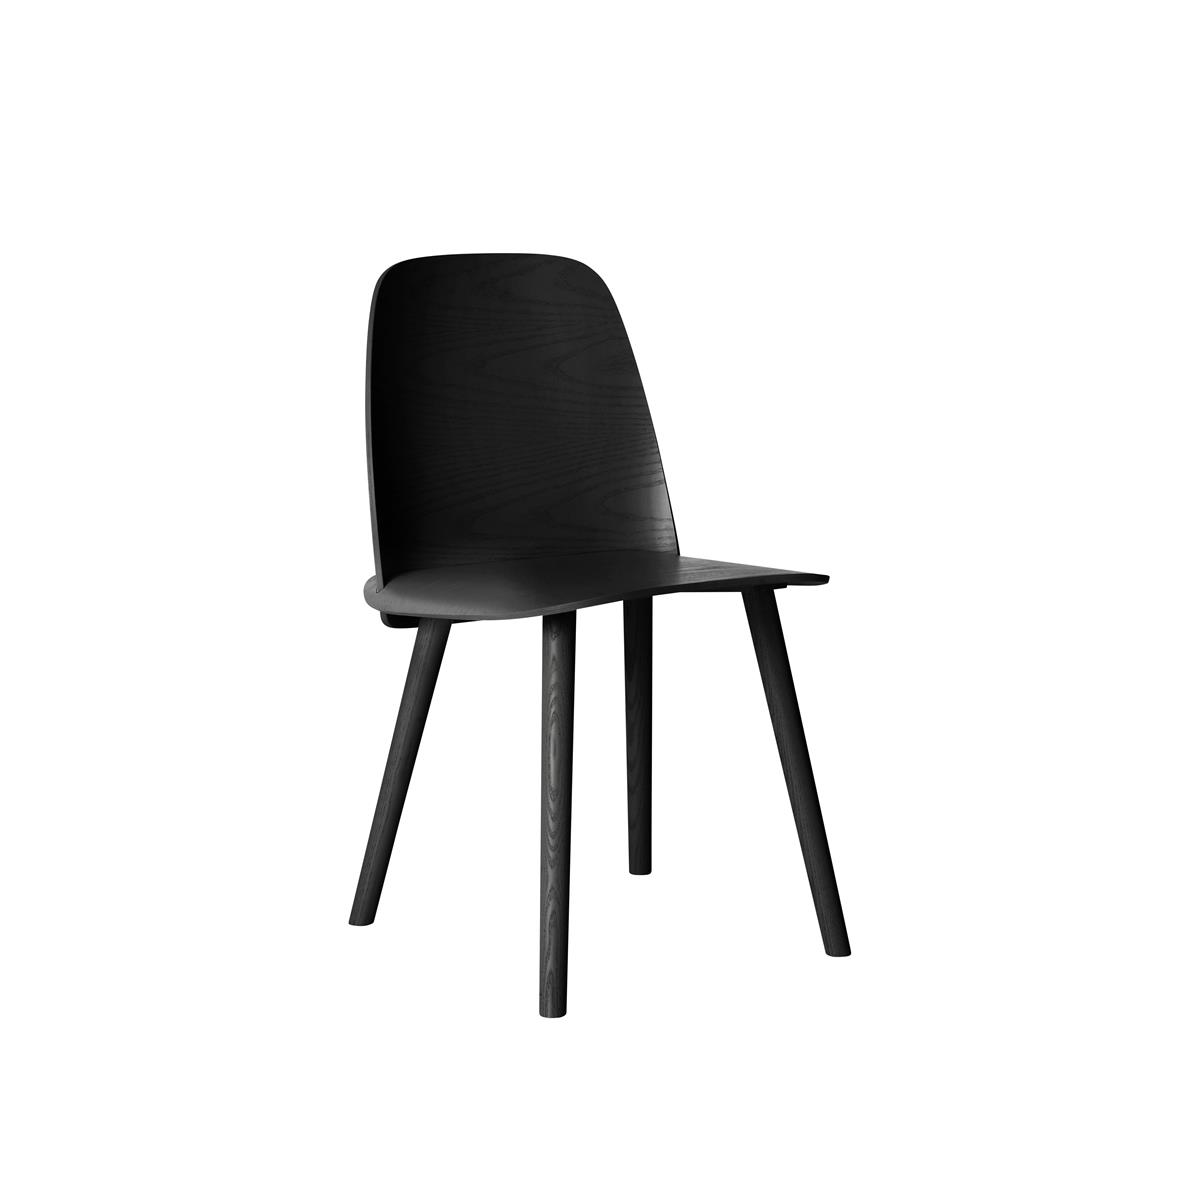 Nerd Chair - Black